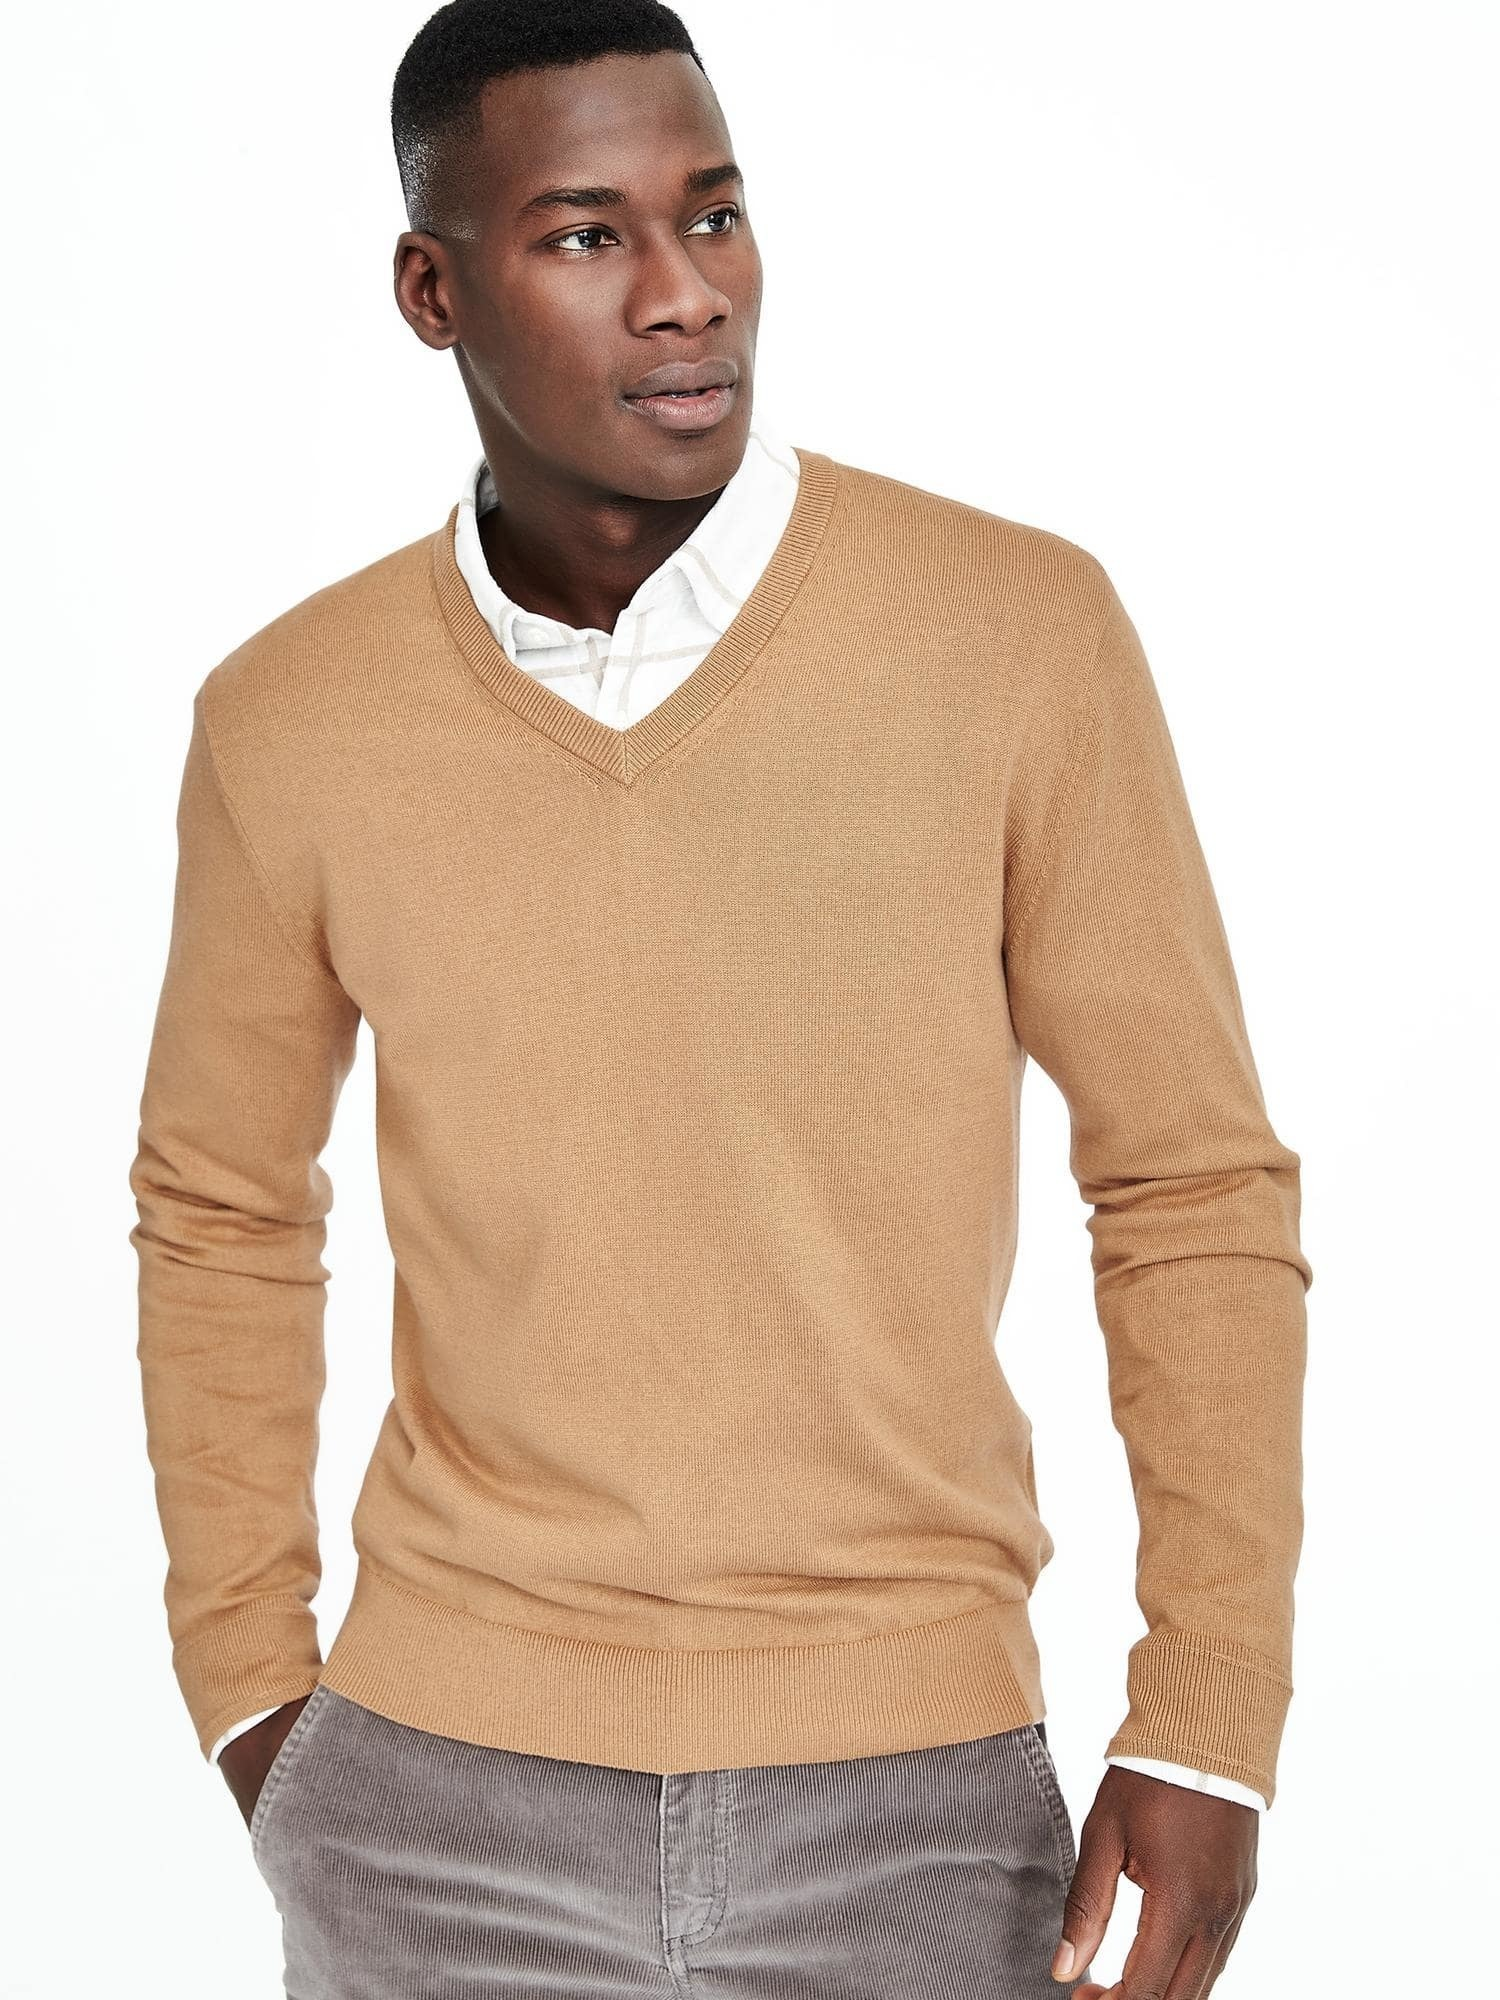 How to Wear a Tan V-neck Sweater (29 looks) | Men's Fashion